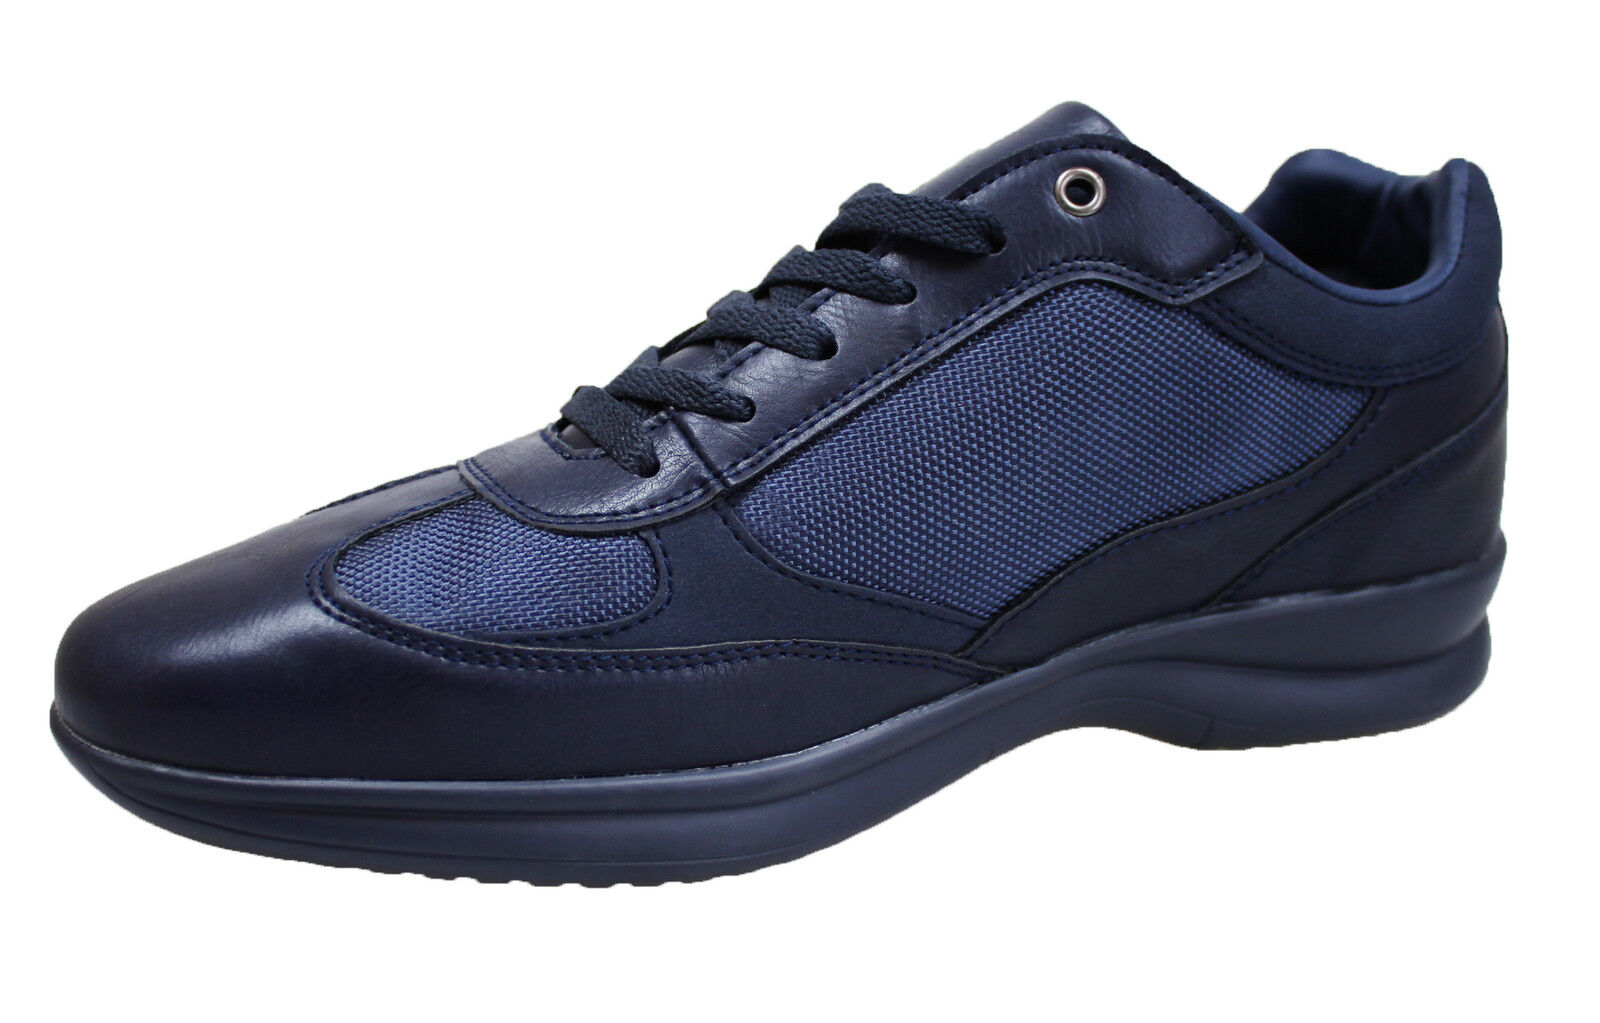 SNEAKERS SHOES MAN DIAMOND blueE CASUAL SHOES NEW LACES number 40 41 42 43 44 45